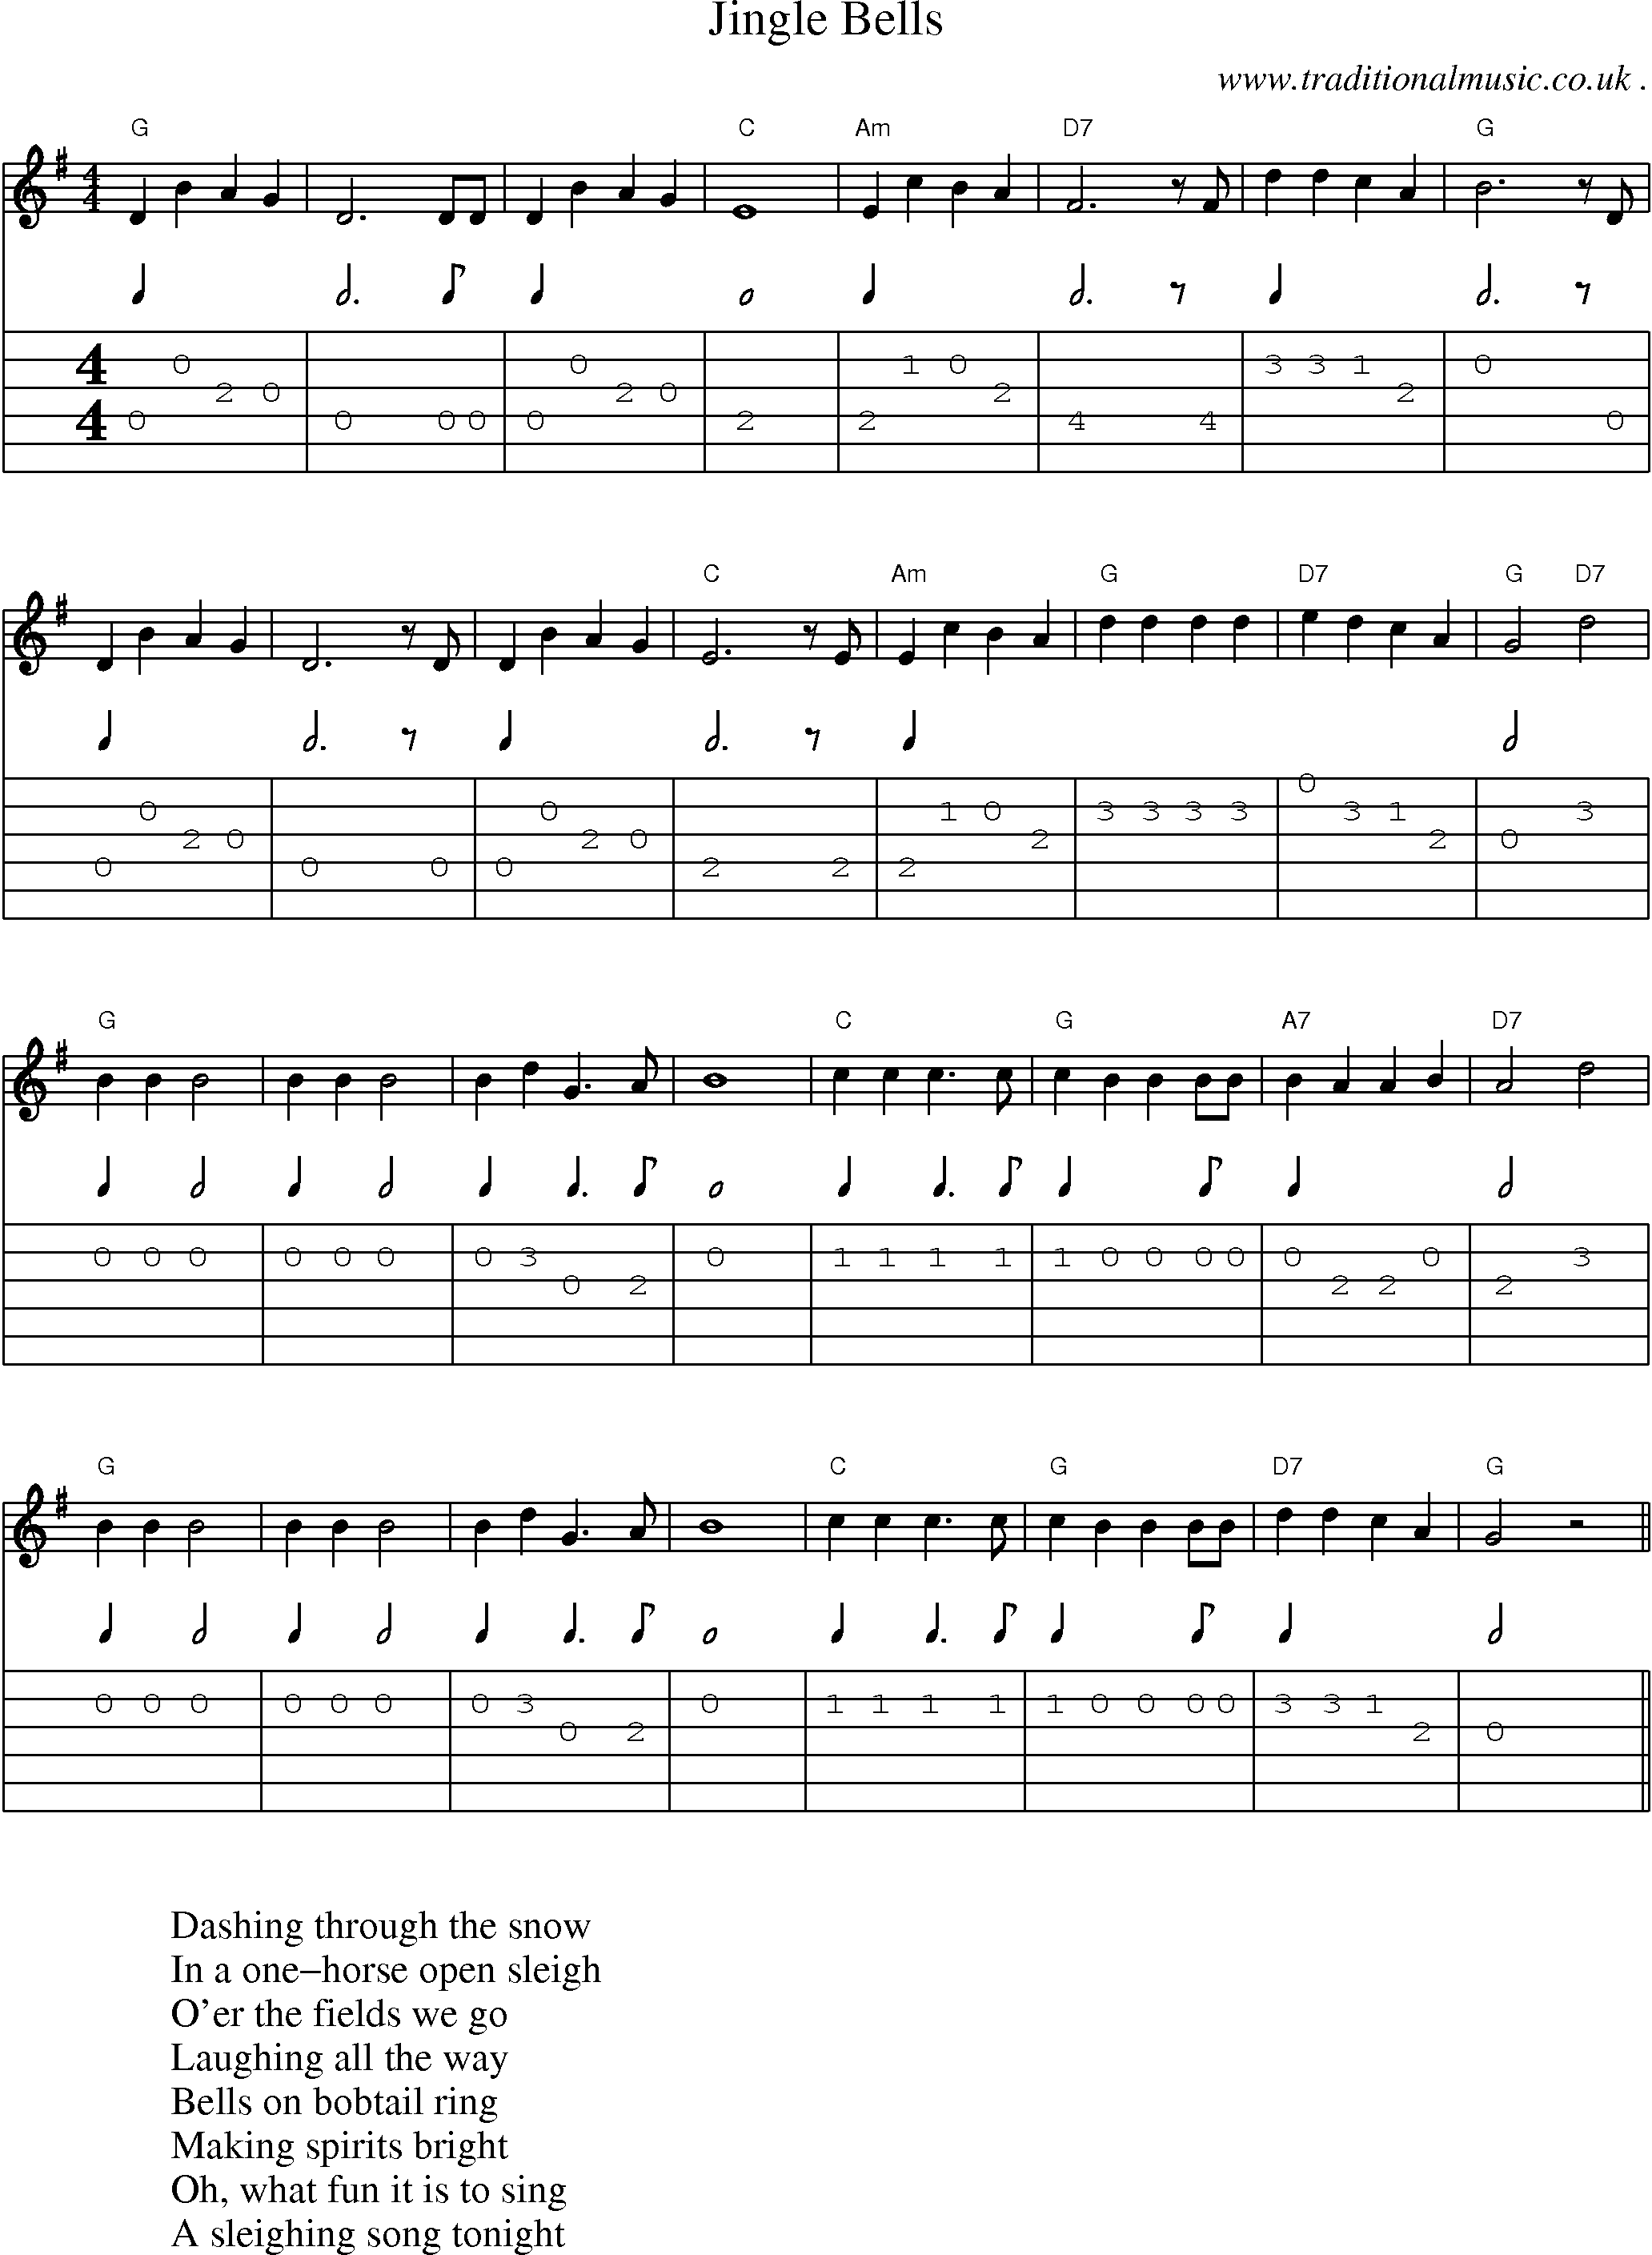 American Old-time music, Scores and Tabs for Guitar - Jingle Bells